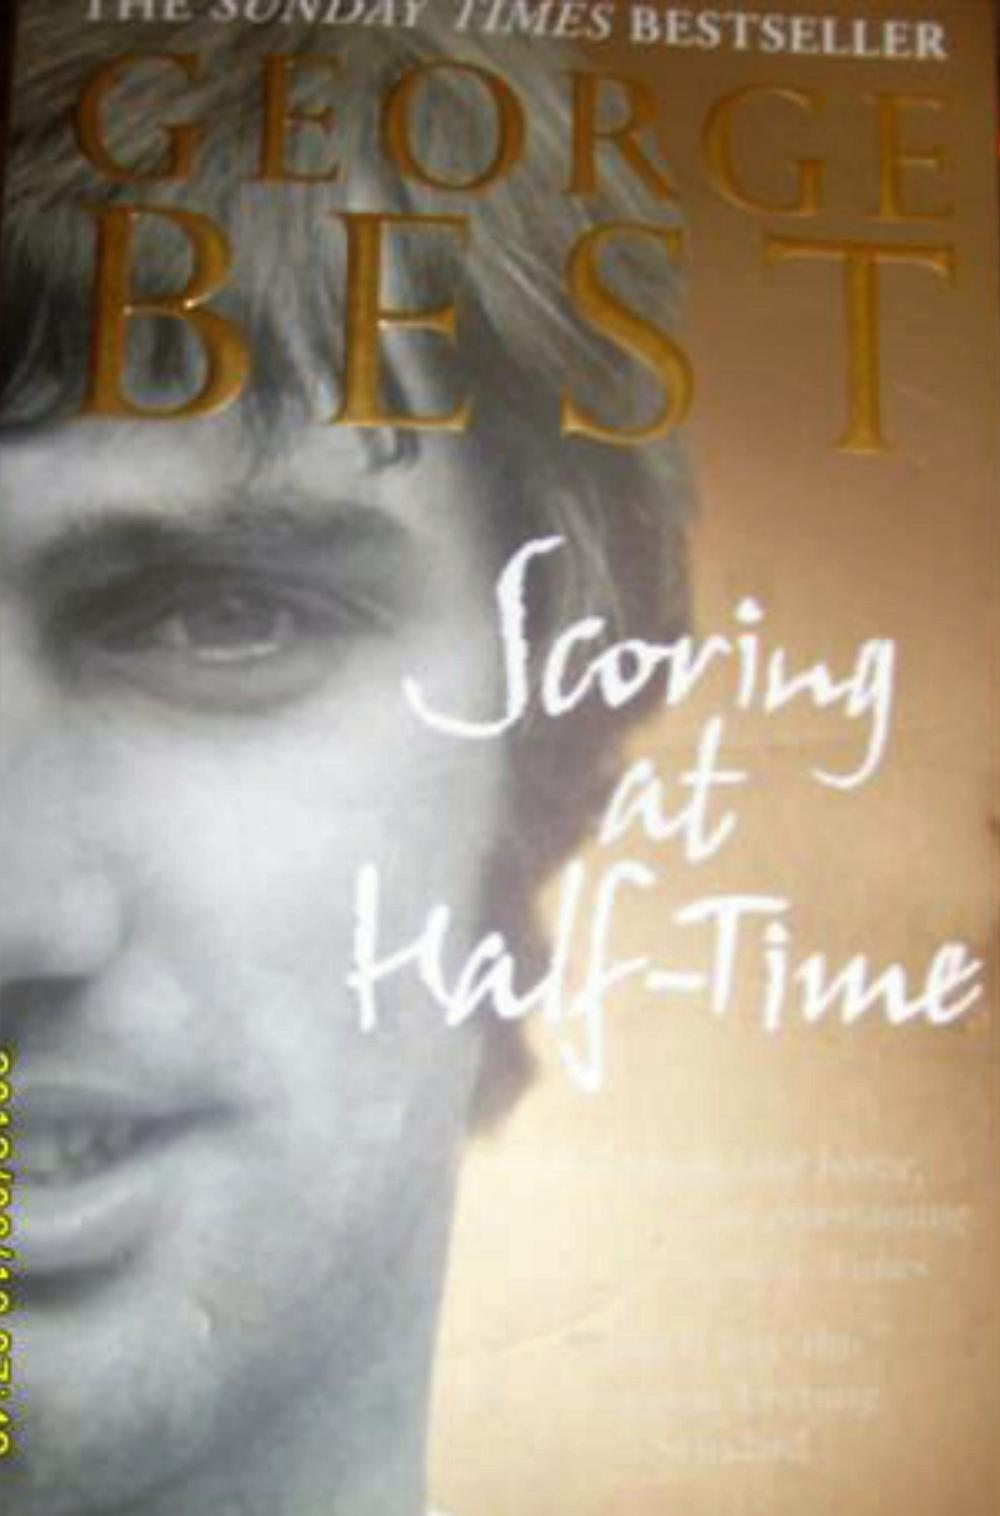 "Lot 207: George Best signed book named """" Scoring at Half Time"""" 2003.   George Best (22 May 1946 ? 25 November 2005) was a Northern Irish professional footballer who played as a winger for Manchester United and the Northern Ireland national team."